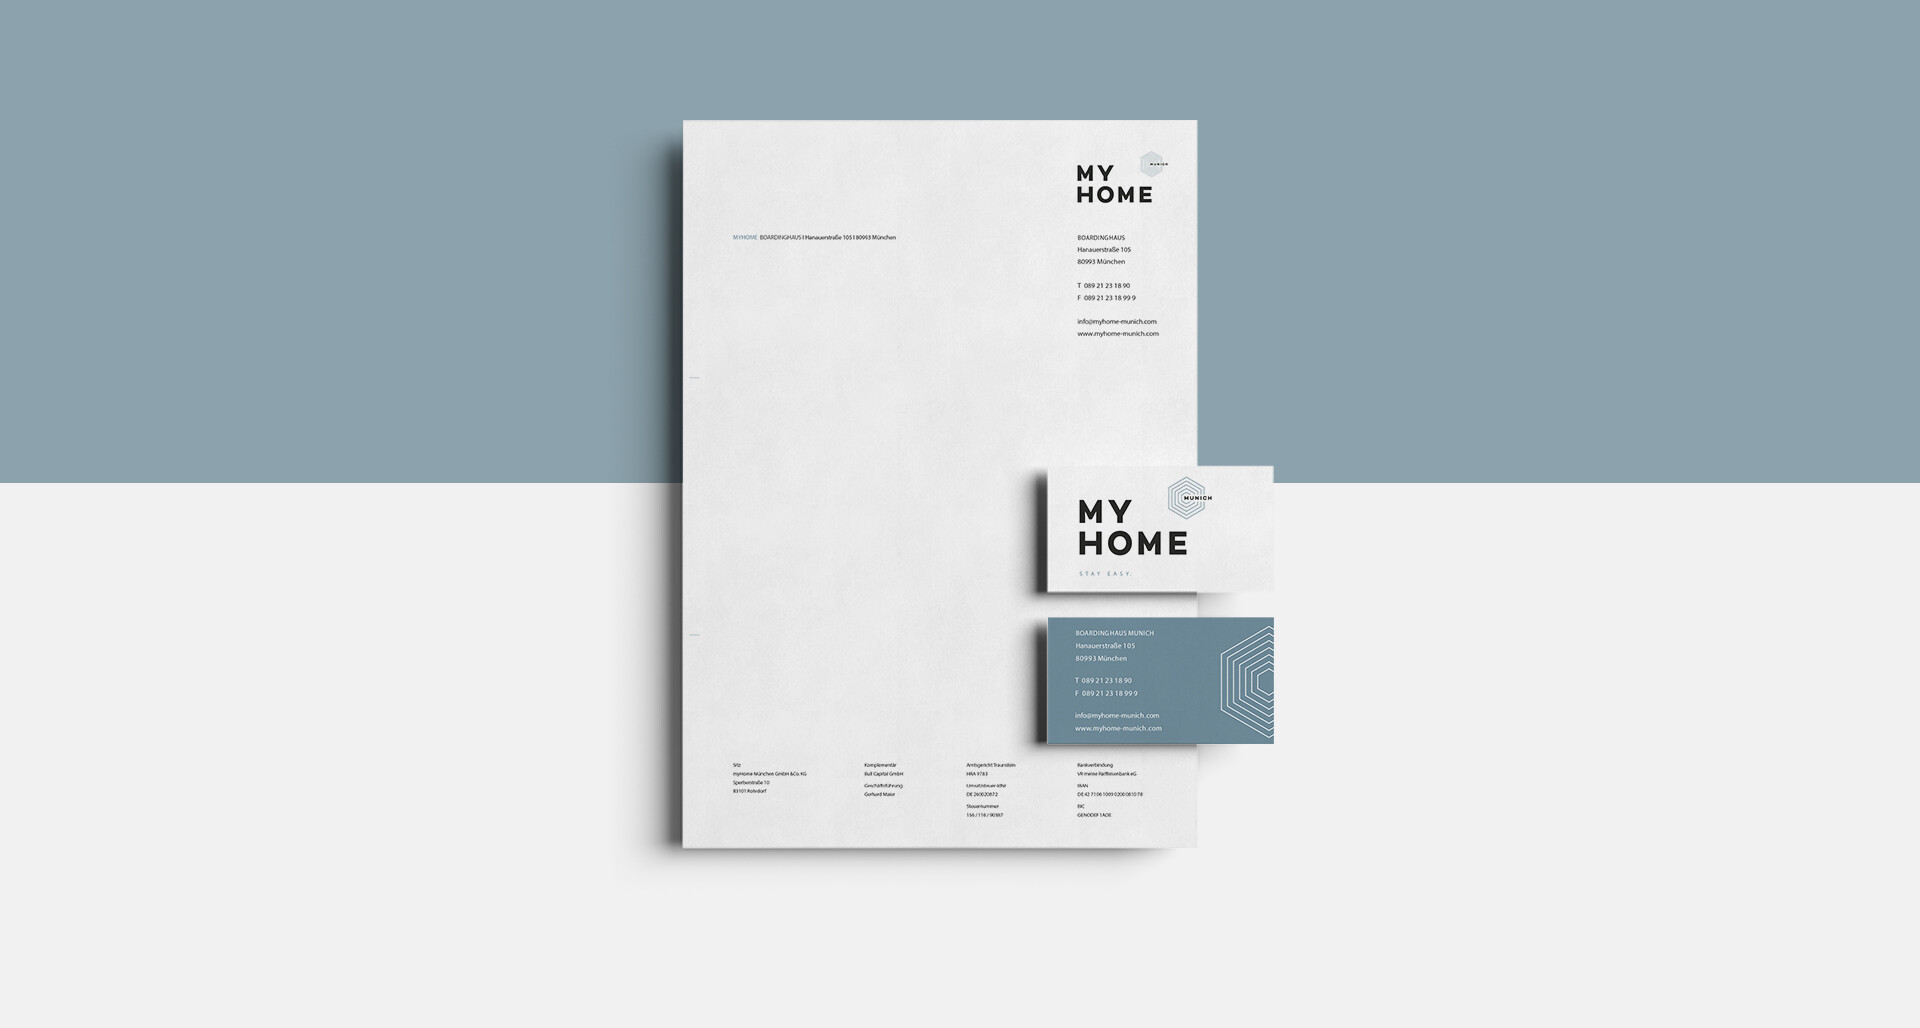 My Home | Corporate Identity - Briefpapier und Visitenkarten